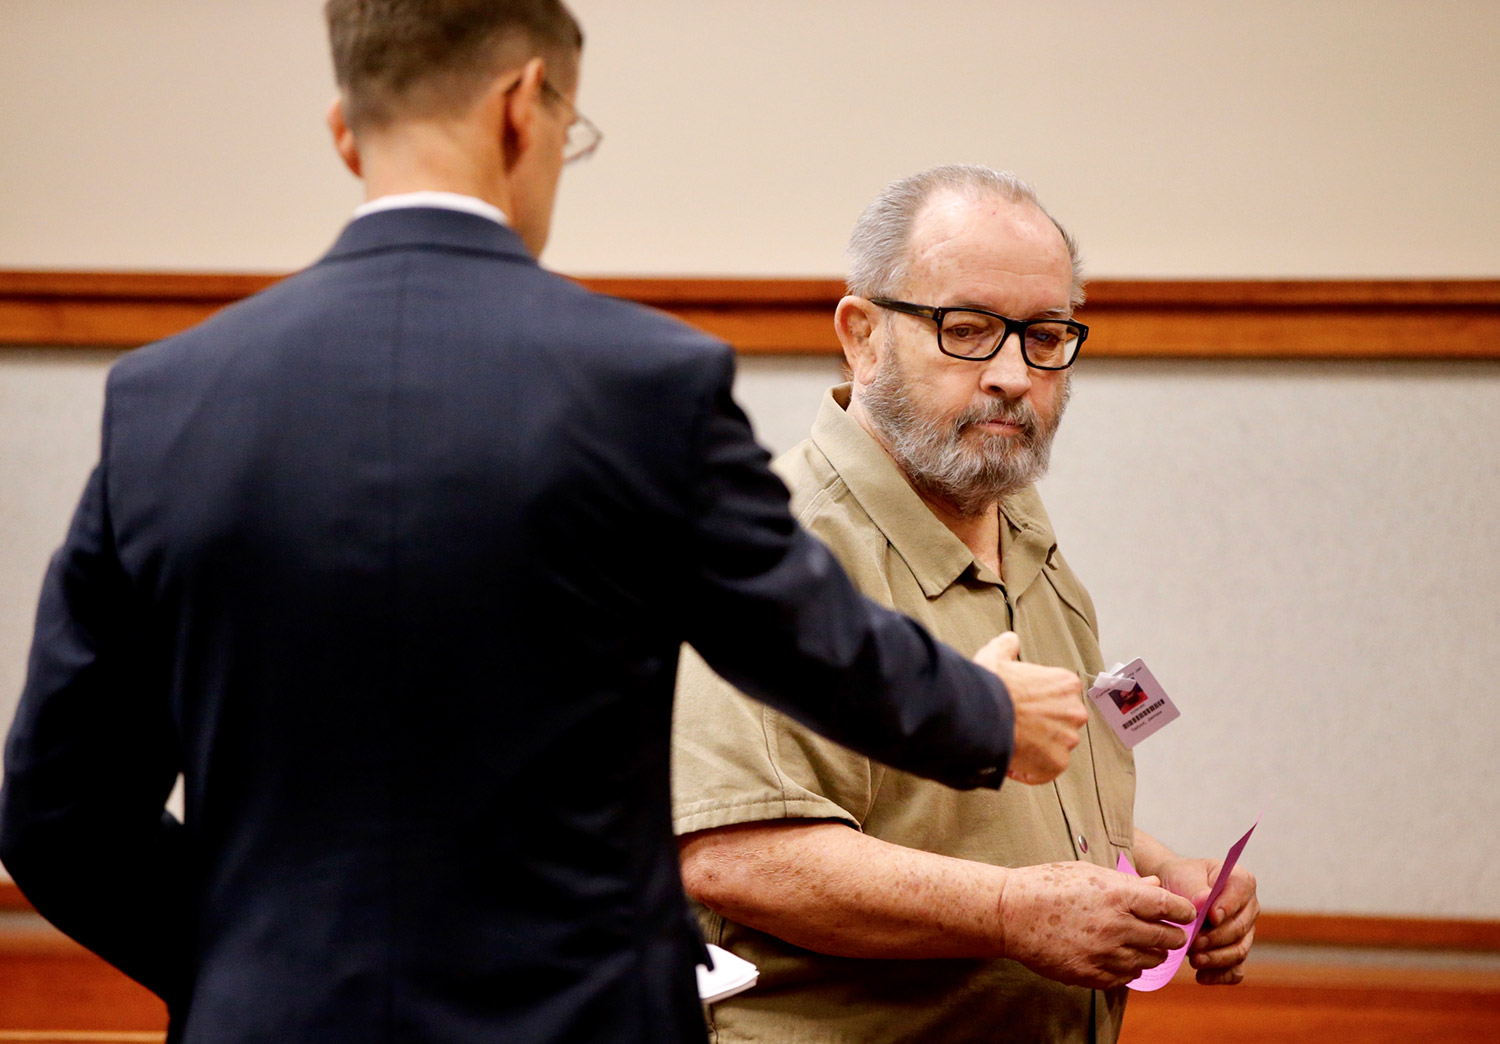 Ex-priest facing sex assault charge goes back to Missouri after posting bail